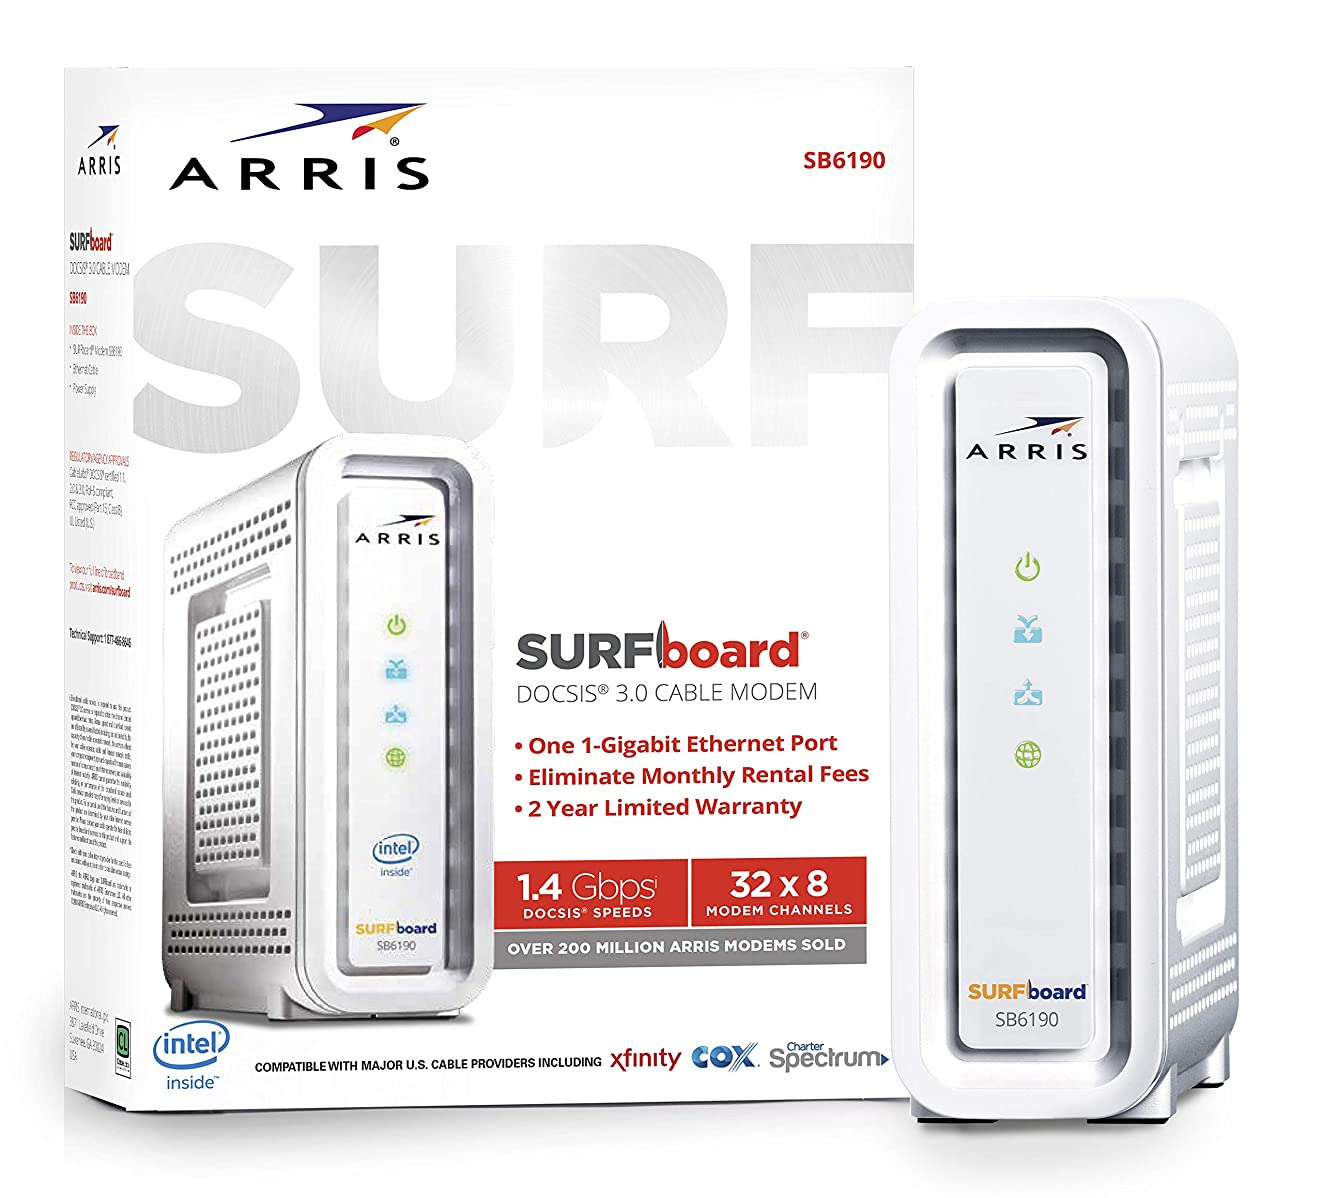 ARRIS SURFboard (32x8) DOCSIS 3.0 Cable Modem, 1.4 Gbps Max Speed, Certified for Comcast Xfinity, Spectrum, Cox, Cablevision & more (SB6190 White)